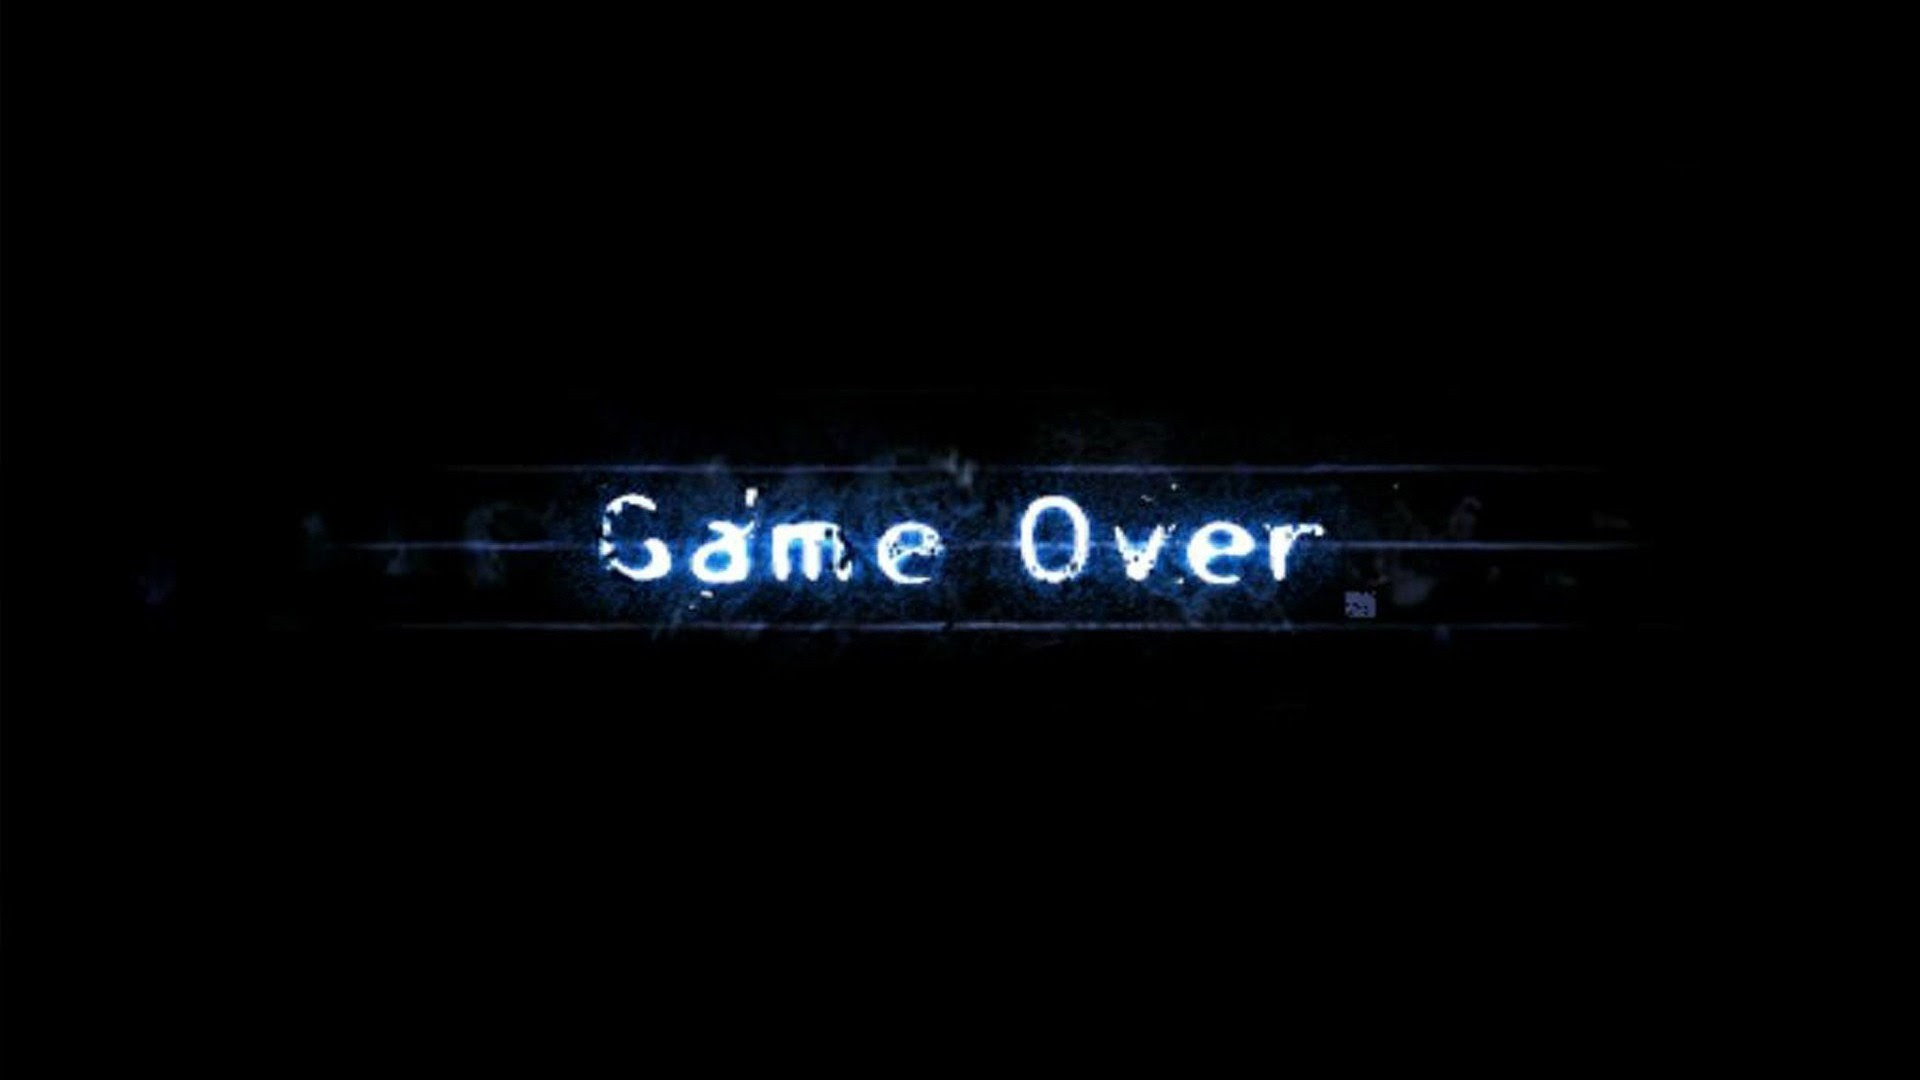 Game Over black background wallpaper  1920x1080  186003